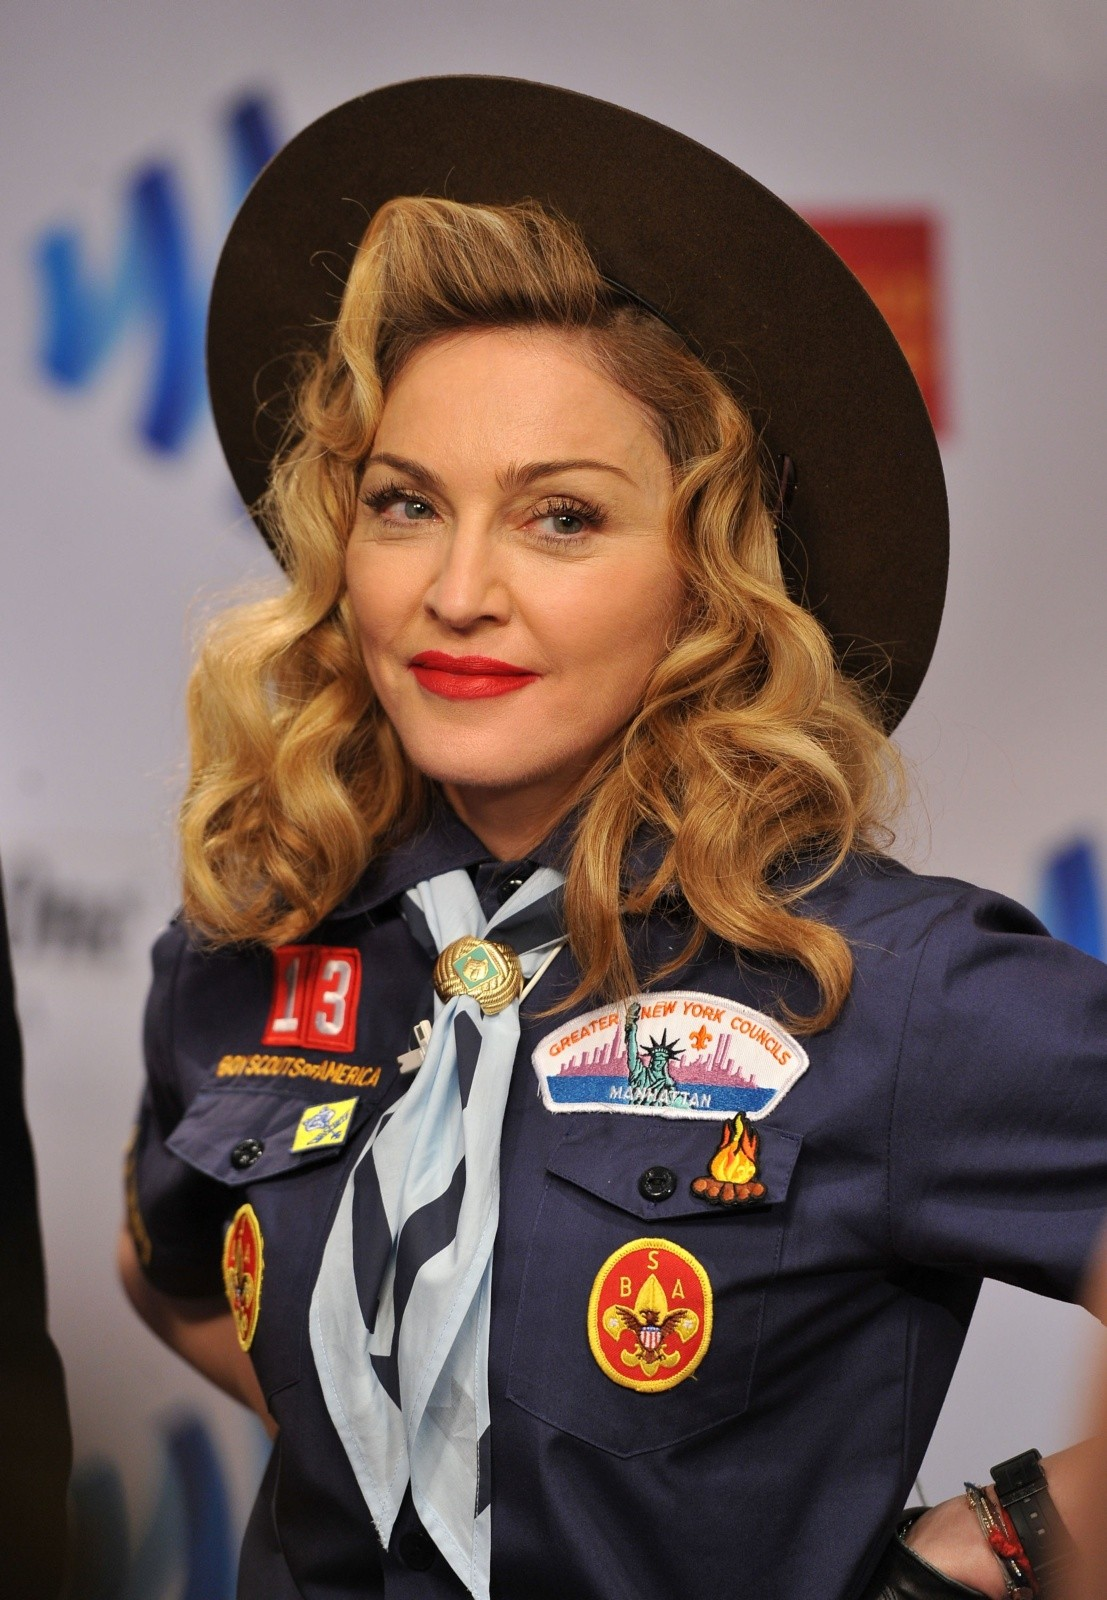 Madonna Boy Scout Glaad Awards Anderson Cooper